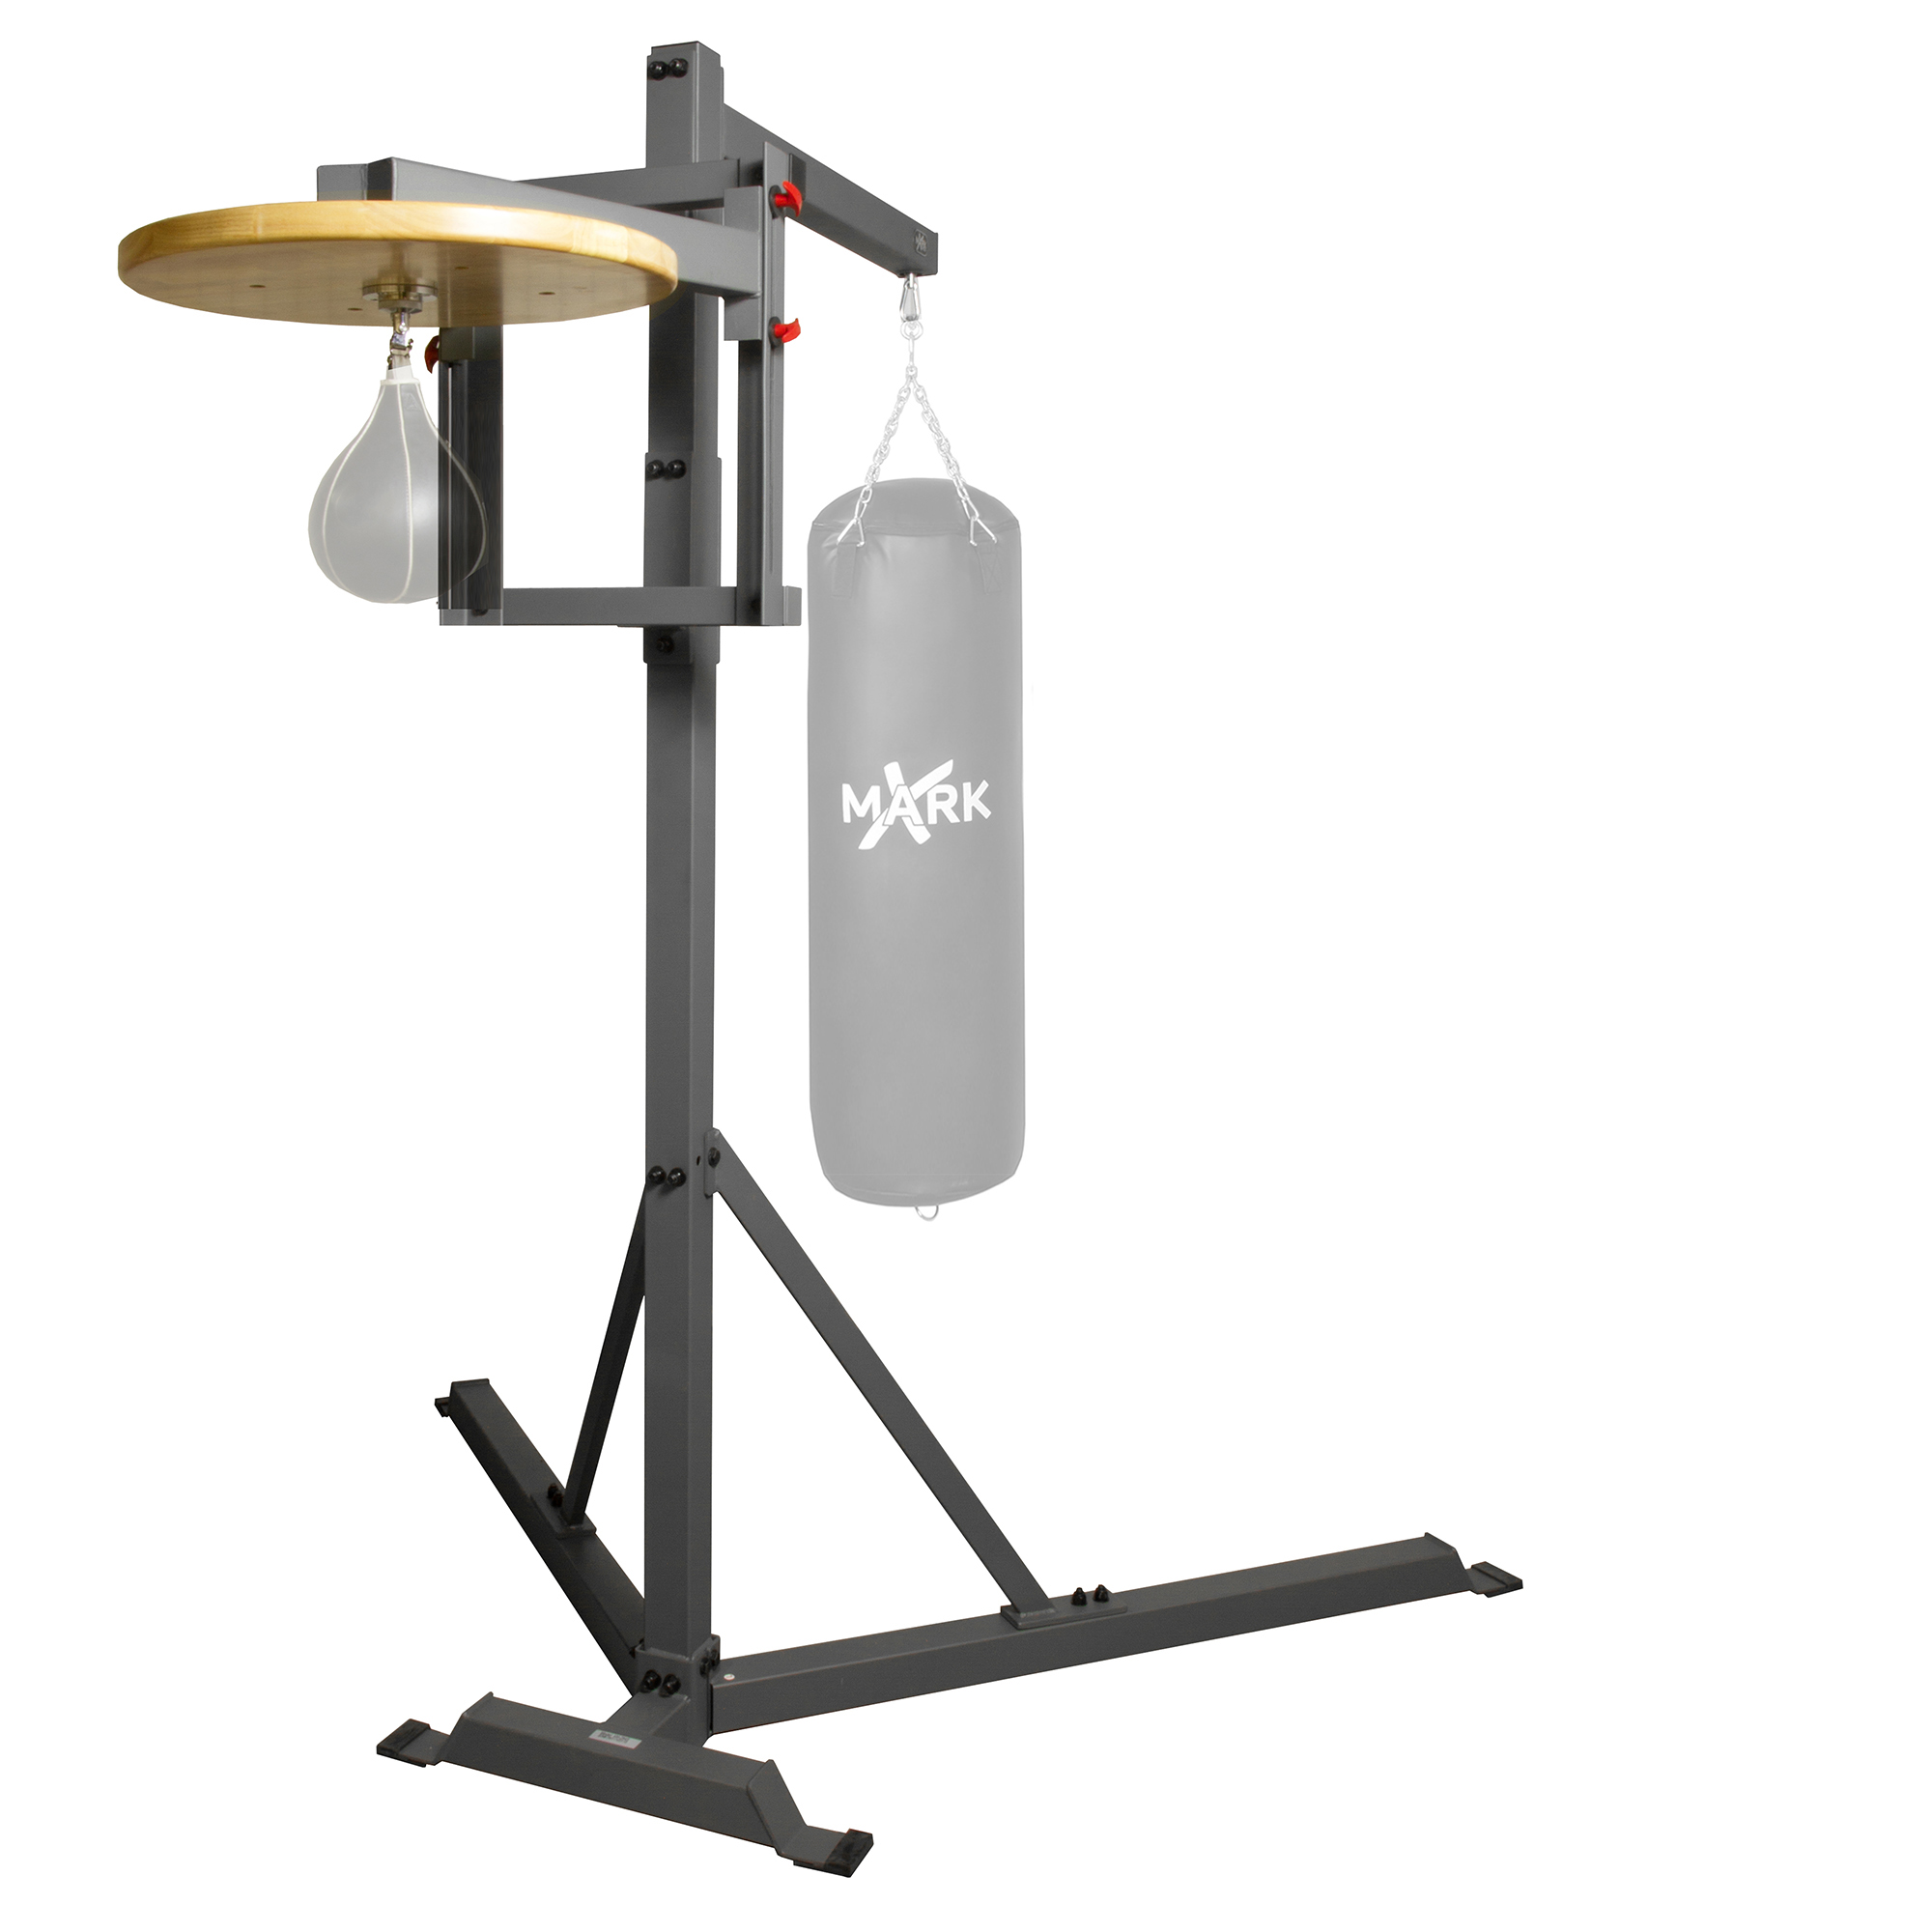 fitness dumbbell bar c olympic plate kettlebell holder racks storage tree rugged weight and rack